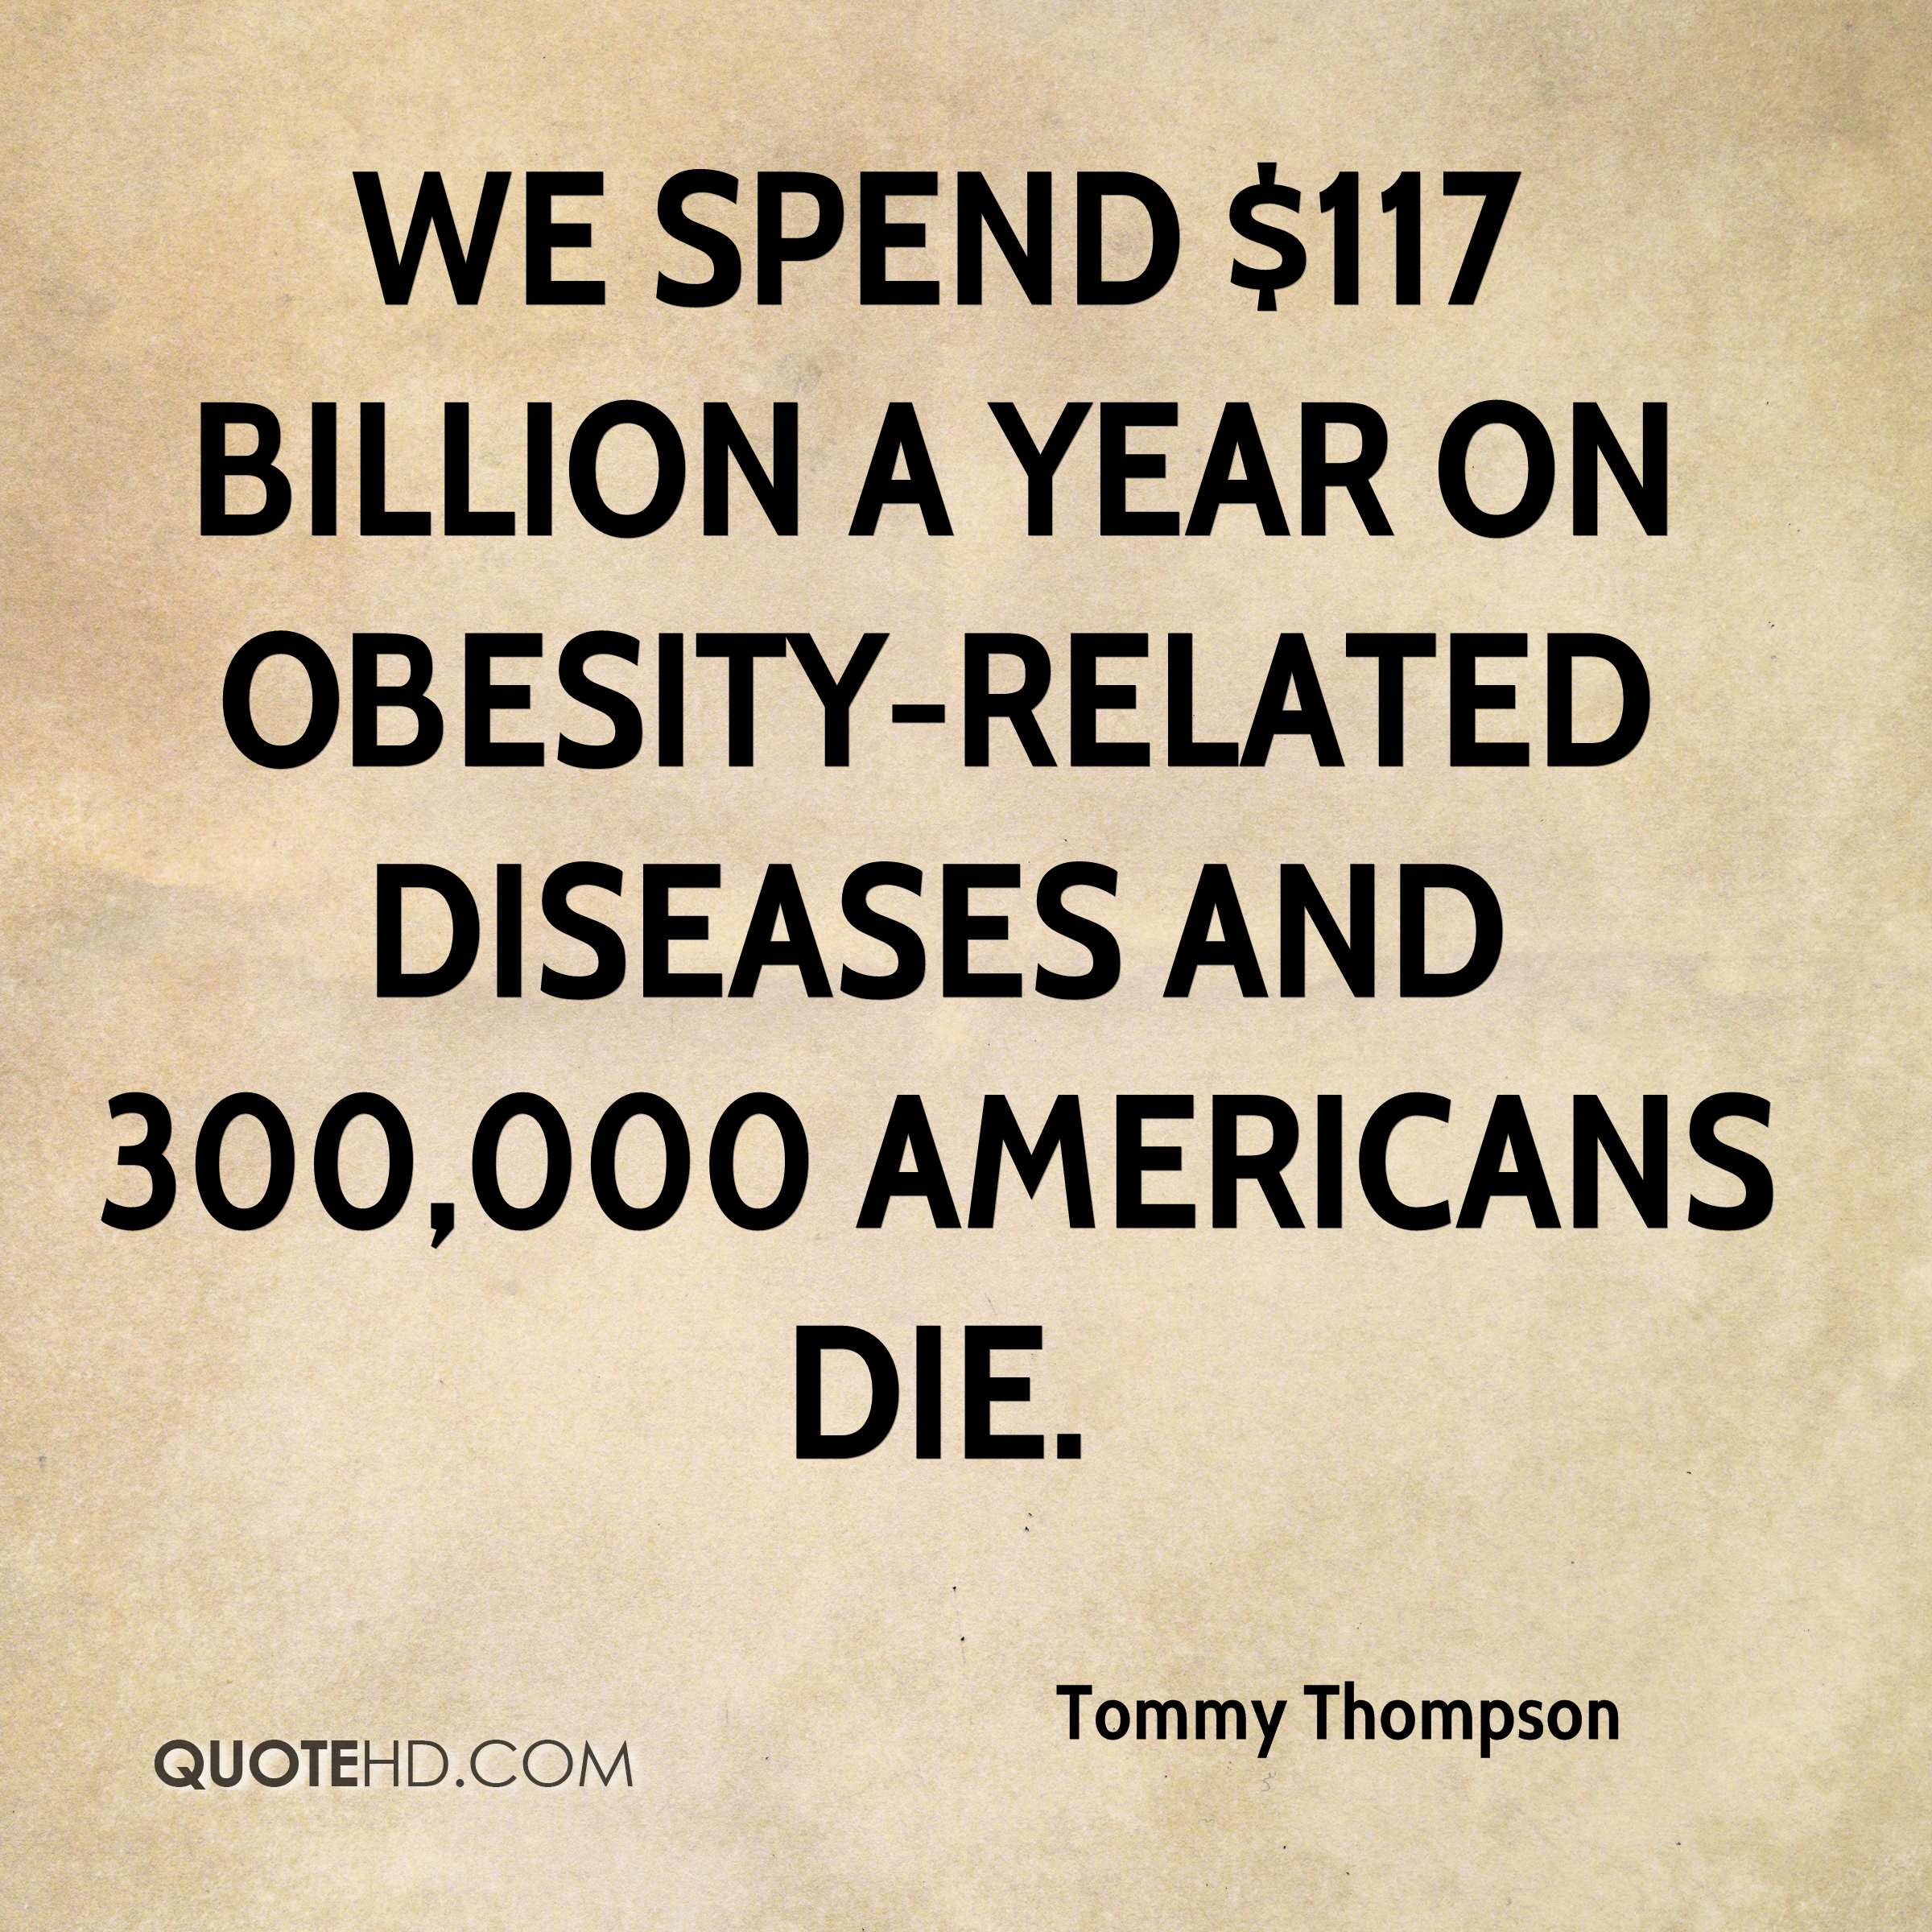 We spend $117 billion a year on obesity-related diseases and 300,000 Americans die.